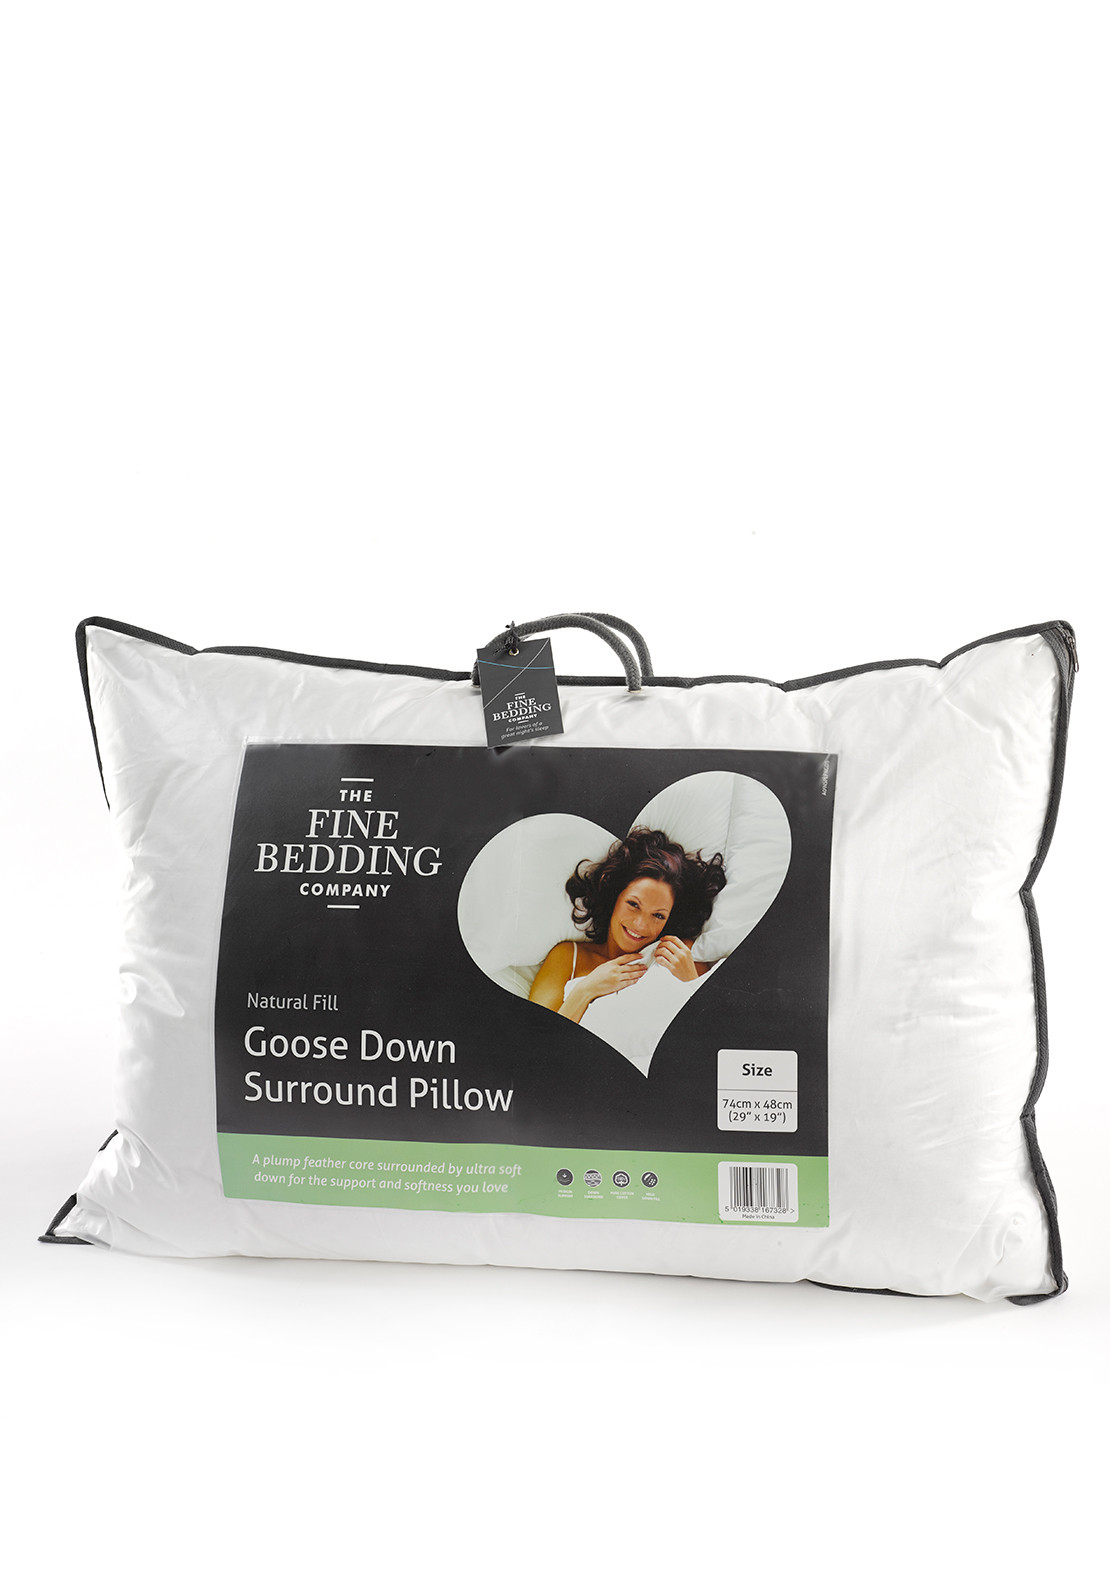 The Fine Bedding Company Goose Down Surround Pillow